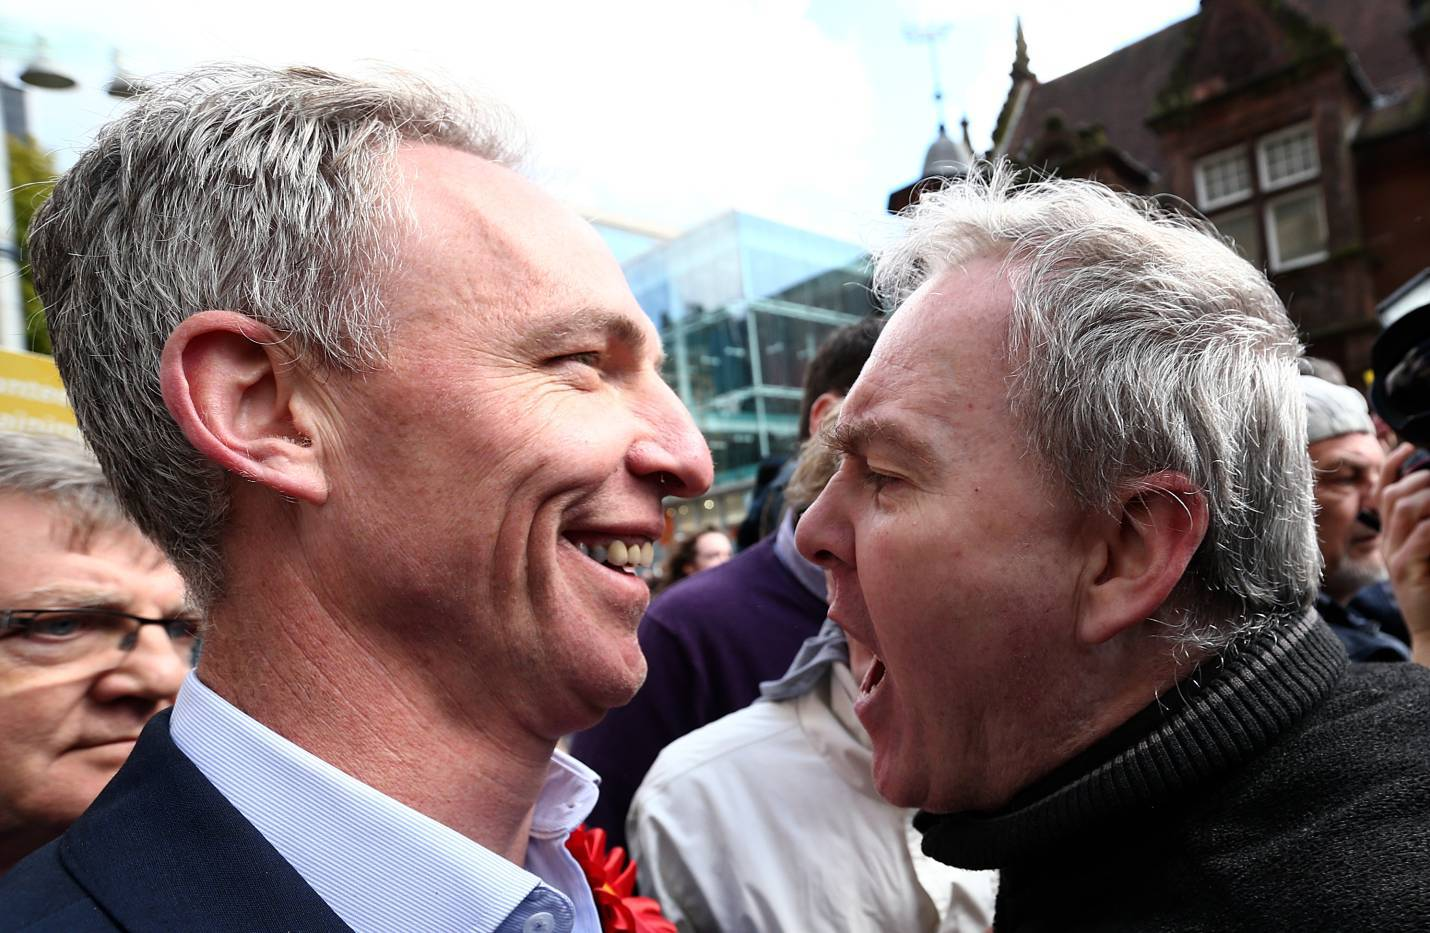 Jim Murphy, the leader of the Scottish Labour Party, is confronted by a protester as he campaigns with comedian Eddie Izzard